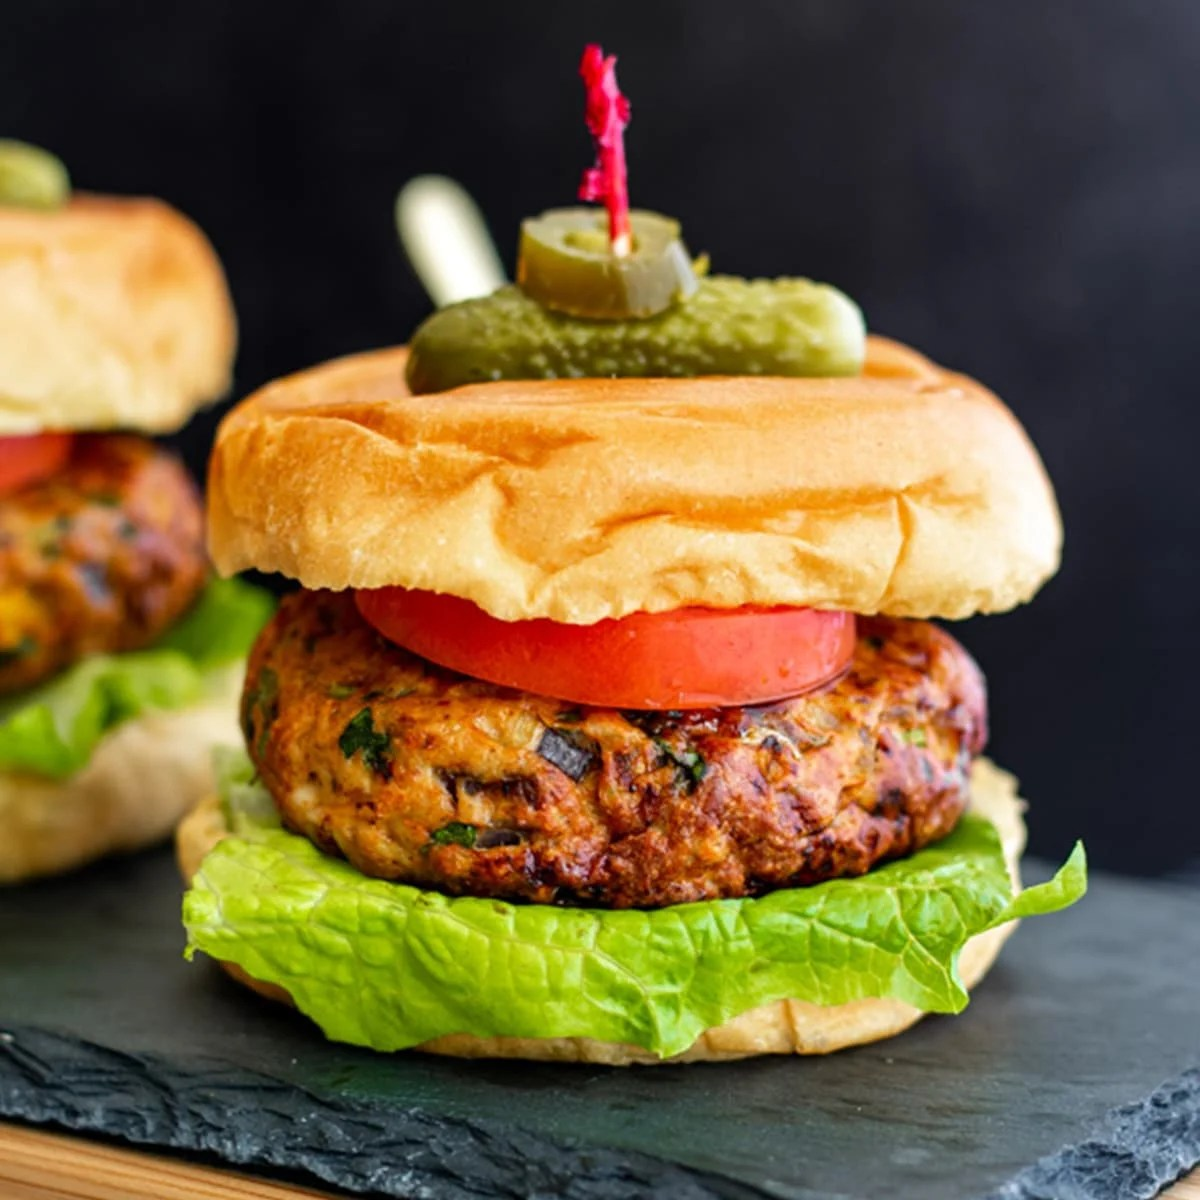 mexican style chicken burger on buns with lettuce, tomato and skewered with pickle